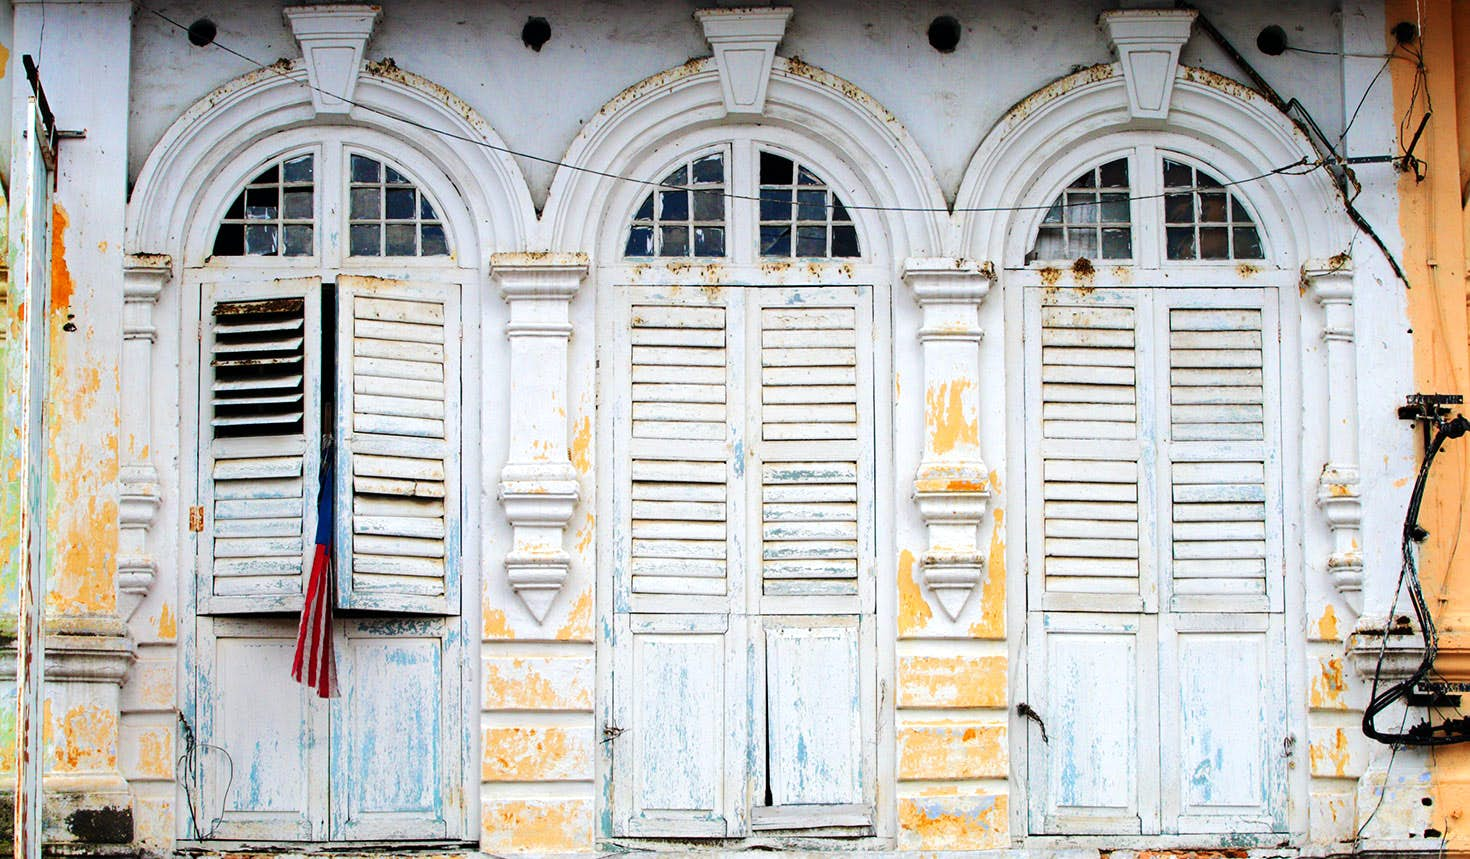 Window shutters in the charming old town disctrict of Ipoh, Malaysia. Image: coleong / Getty Images